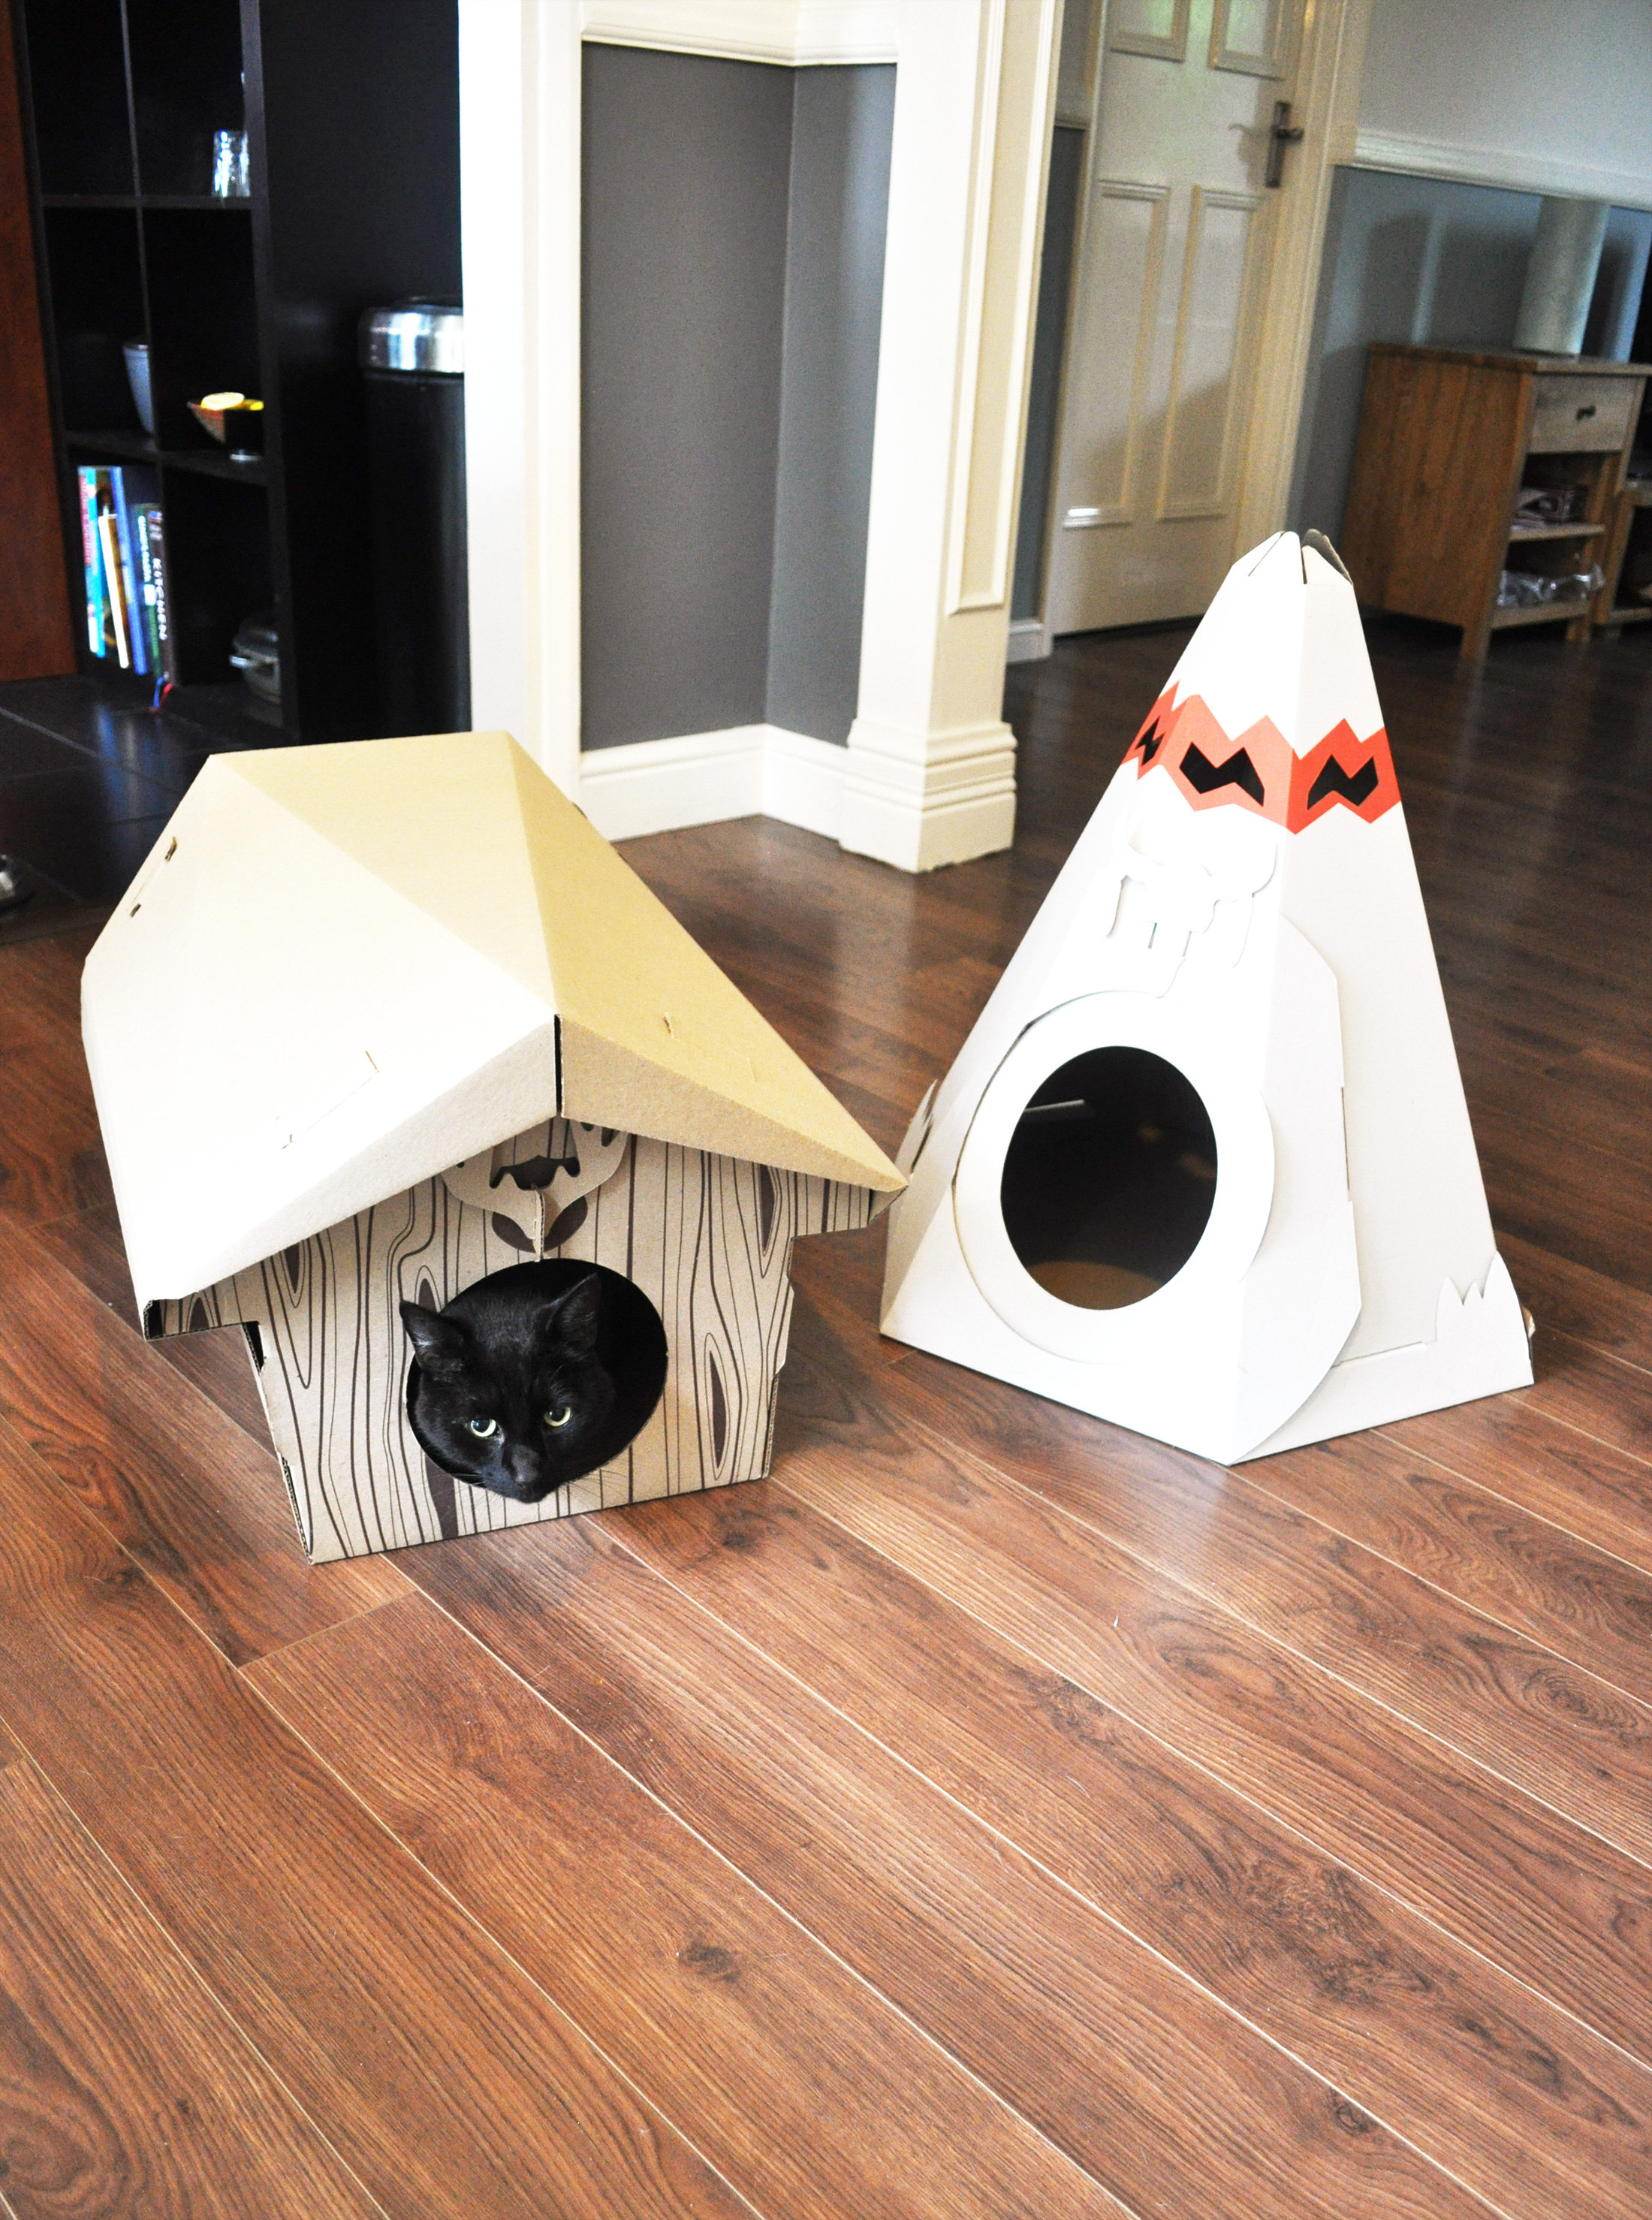 The Wholesale House >> Cat Play House Content Gallery : Irresistible cardboard toy houses for cats.